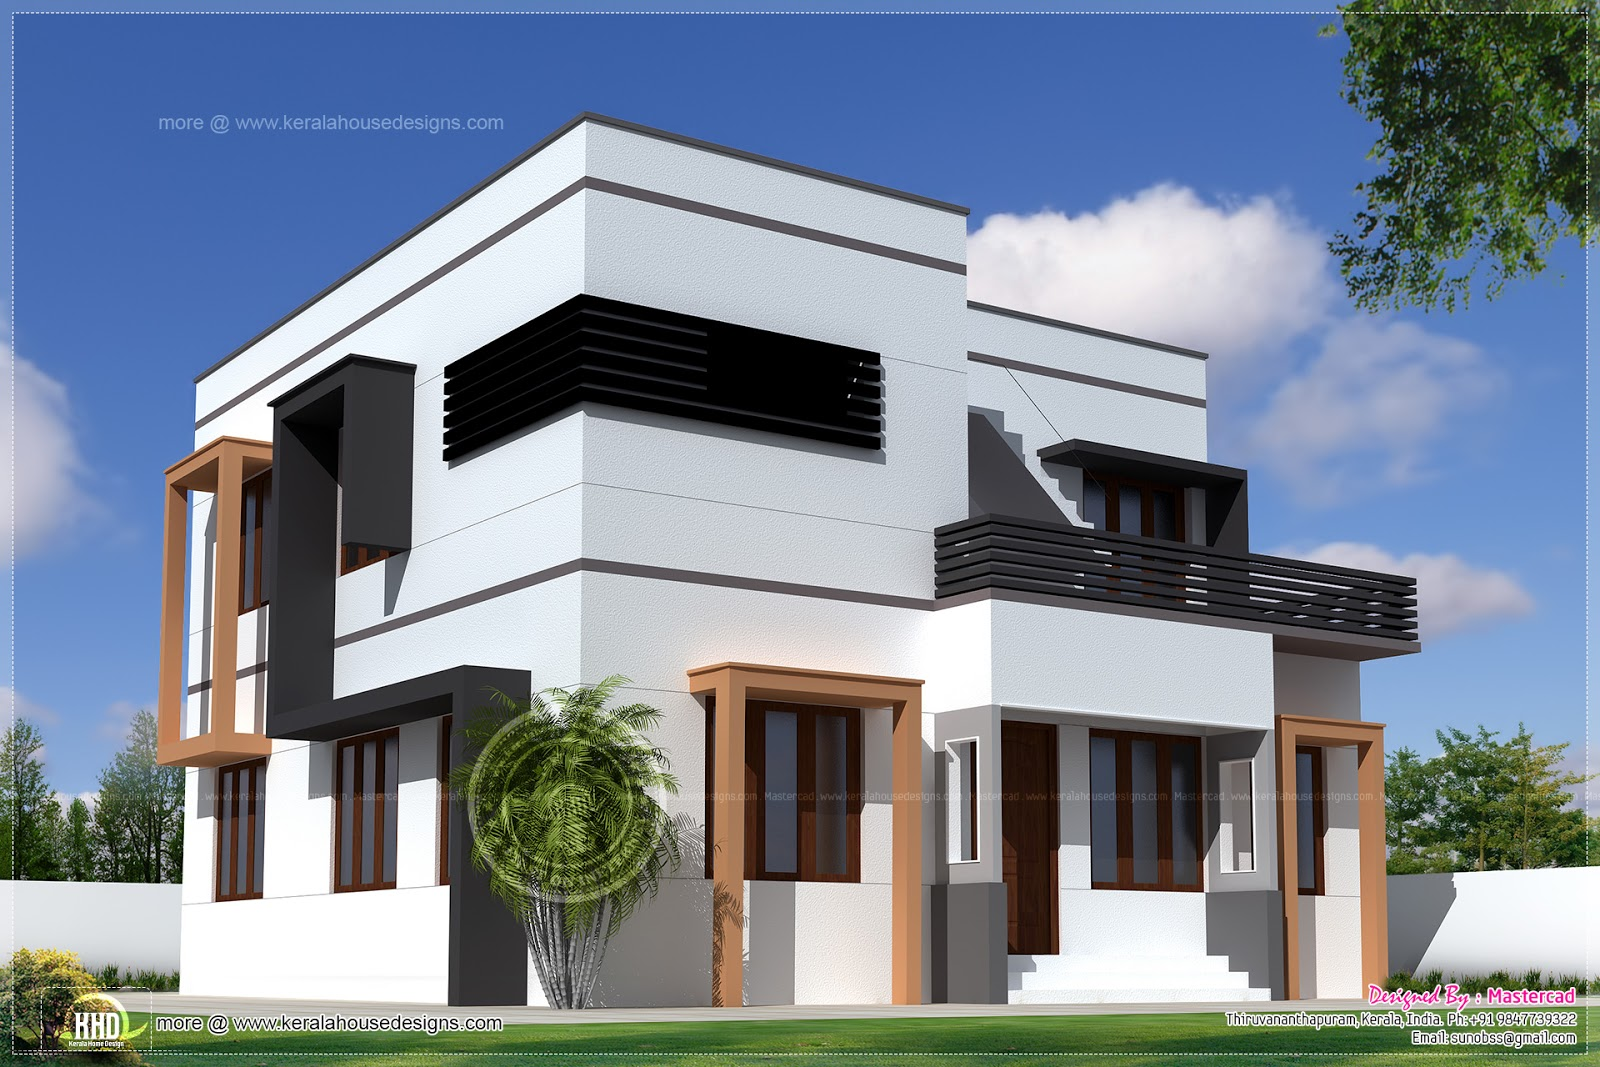 1627 square feet modern villa exterior home kerala plans for 57 square meters to feet